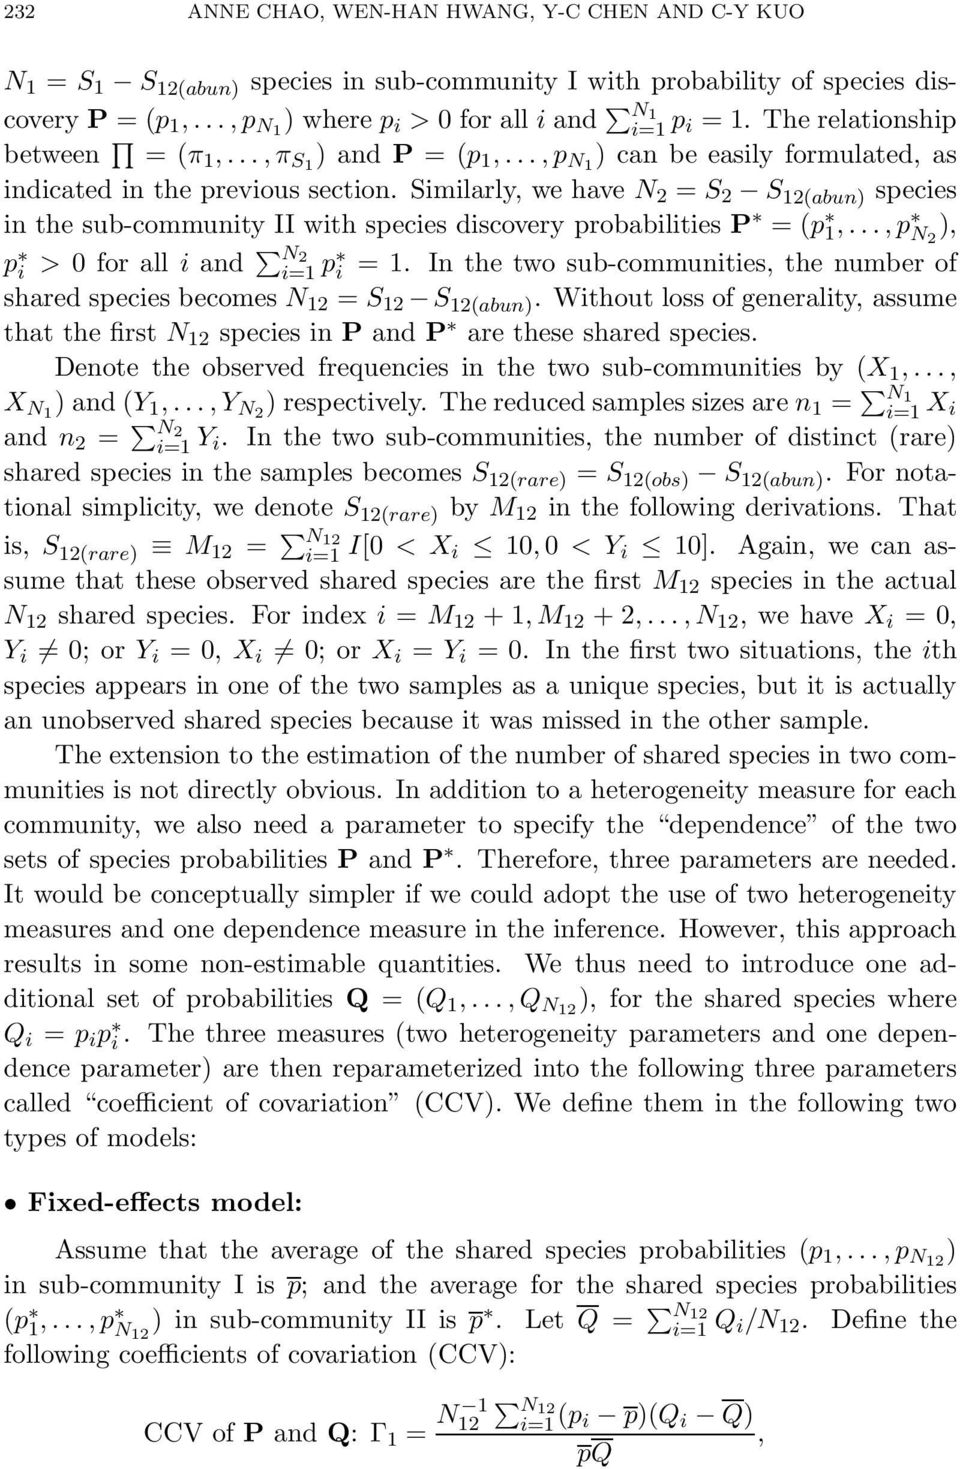 Similarly, we have N 2 = S 2 S 12(abun) species in the sub-community II with species discovery probabilities P =(p 1,...,p N 2 ), p i > 0 for all i and N 2 p i = 1.